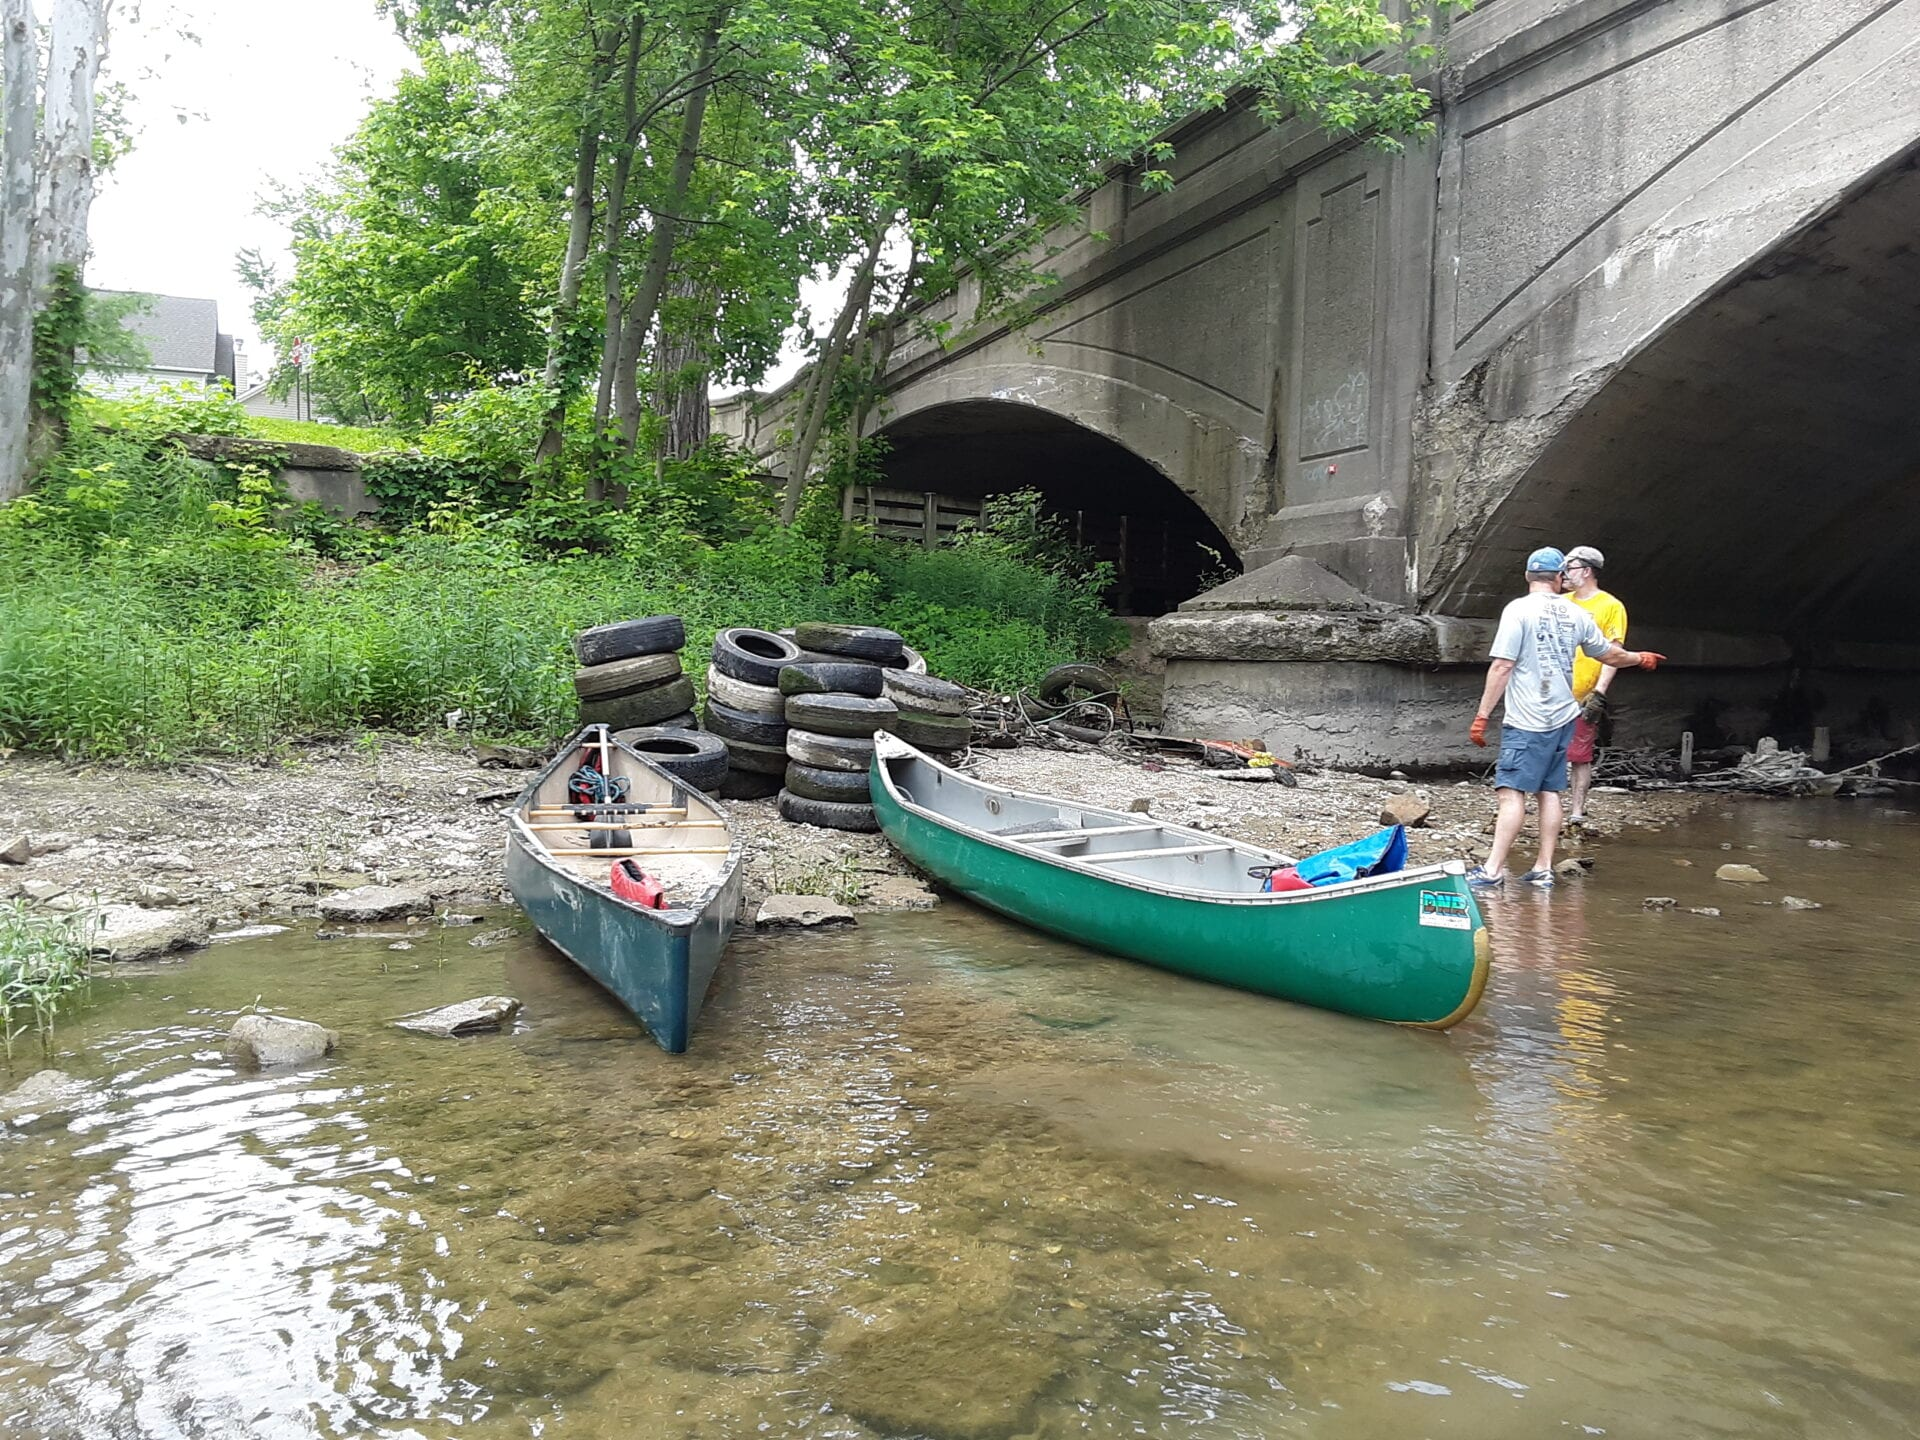 Big or small – anti-litter efforts keep our waterways and communities clean